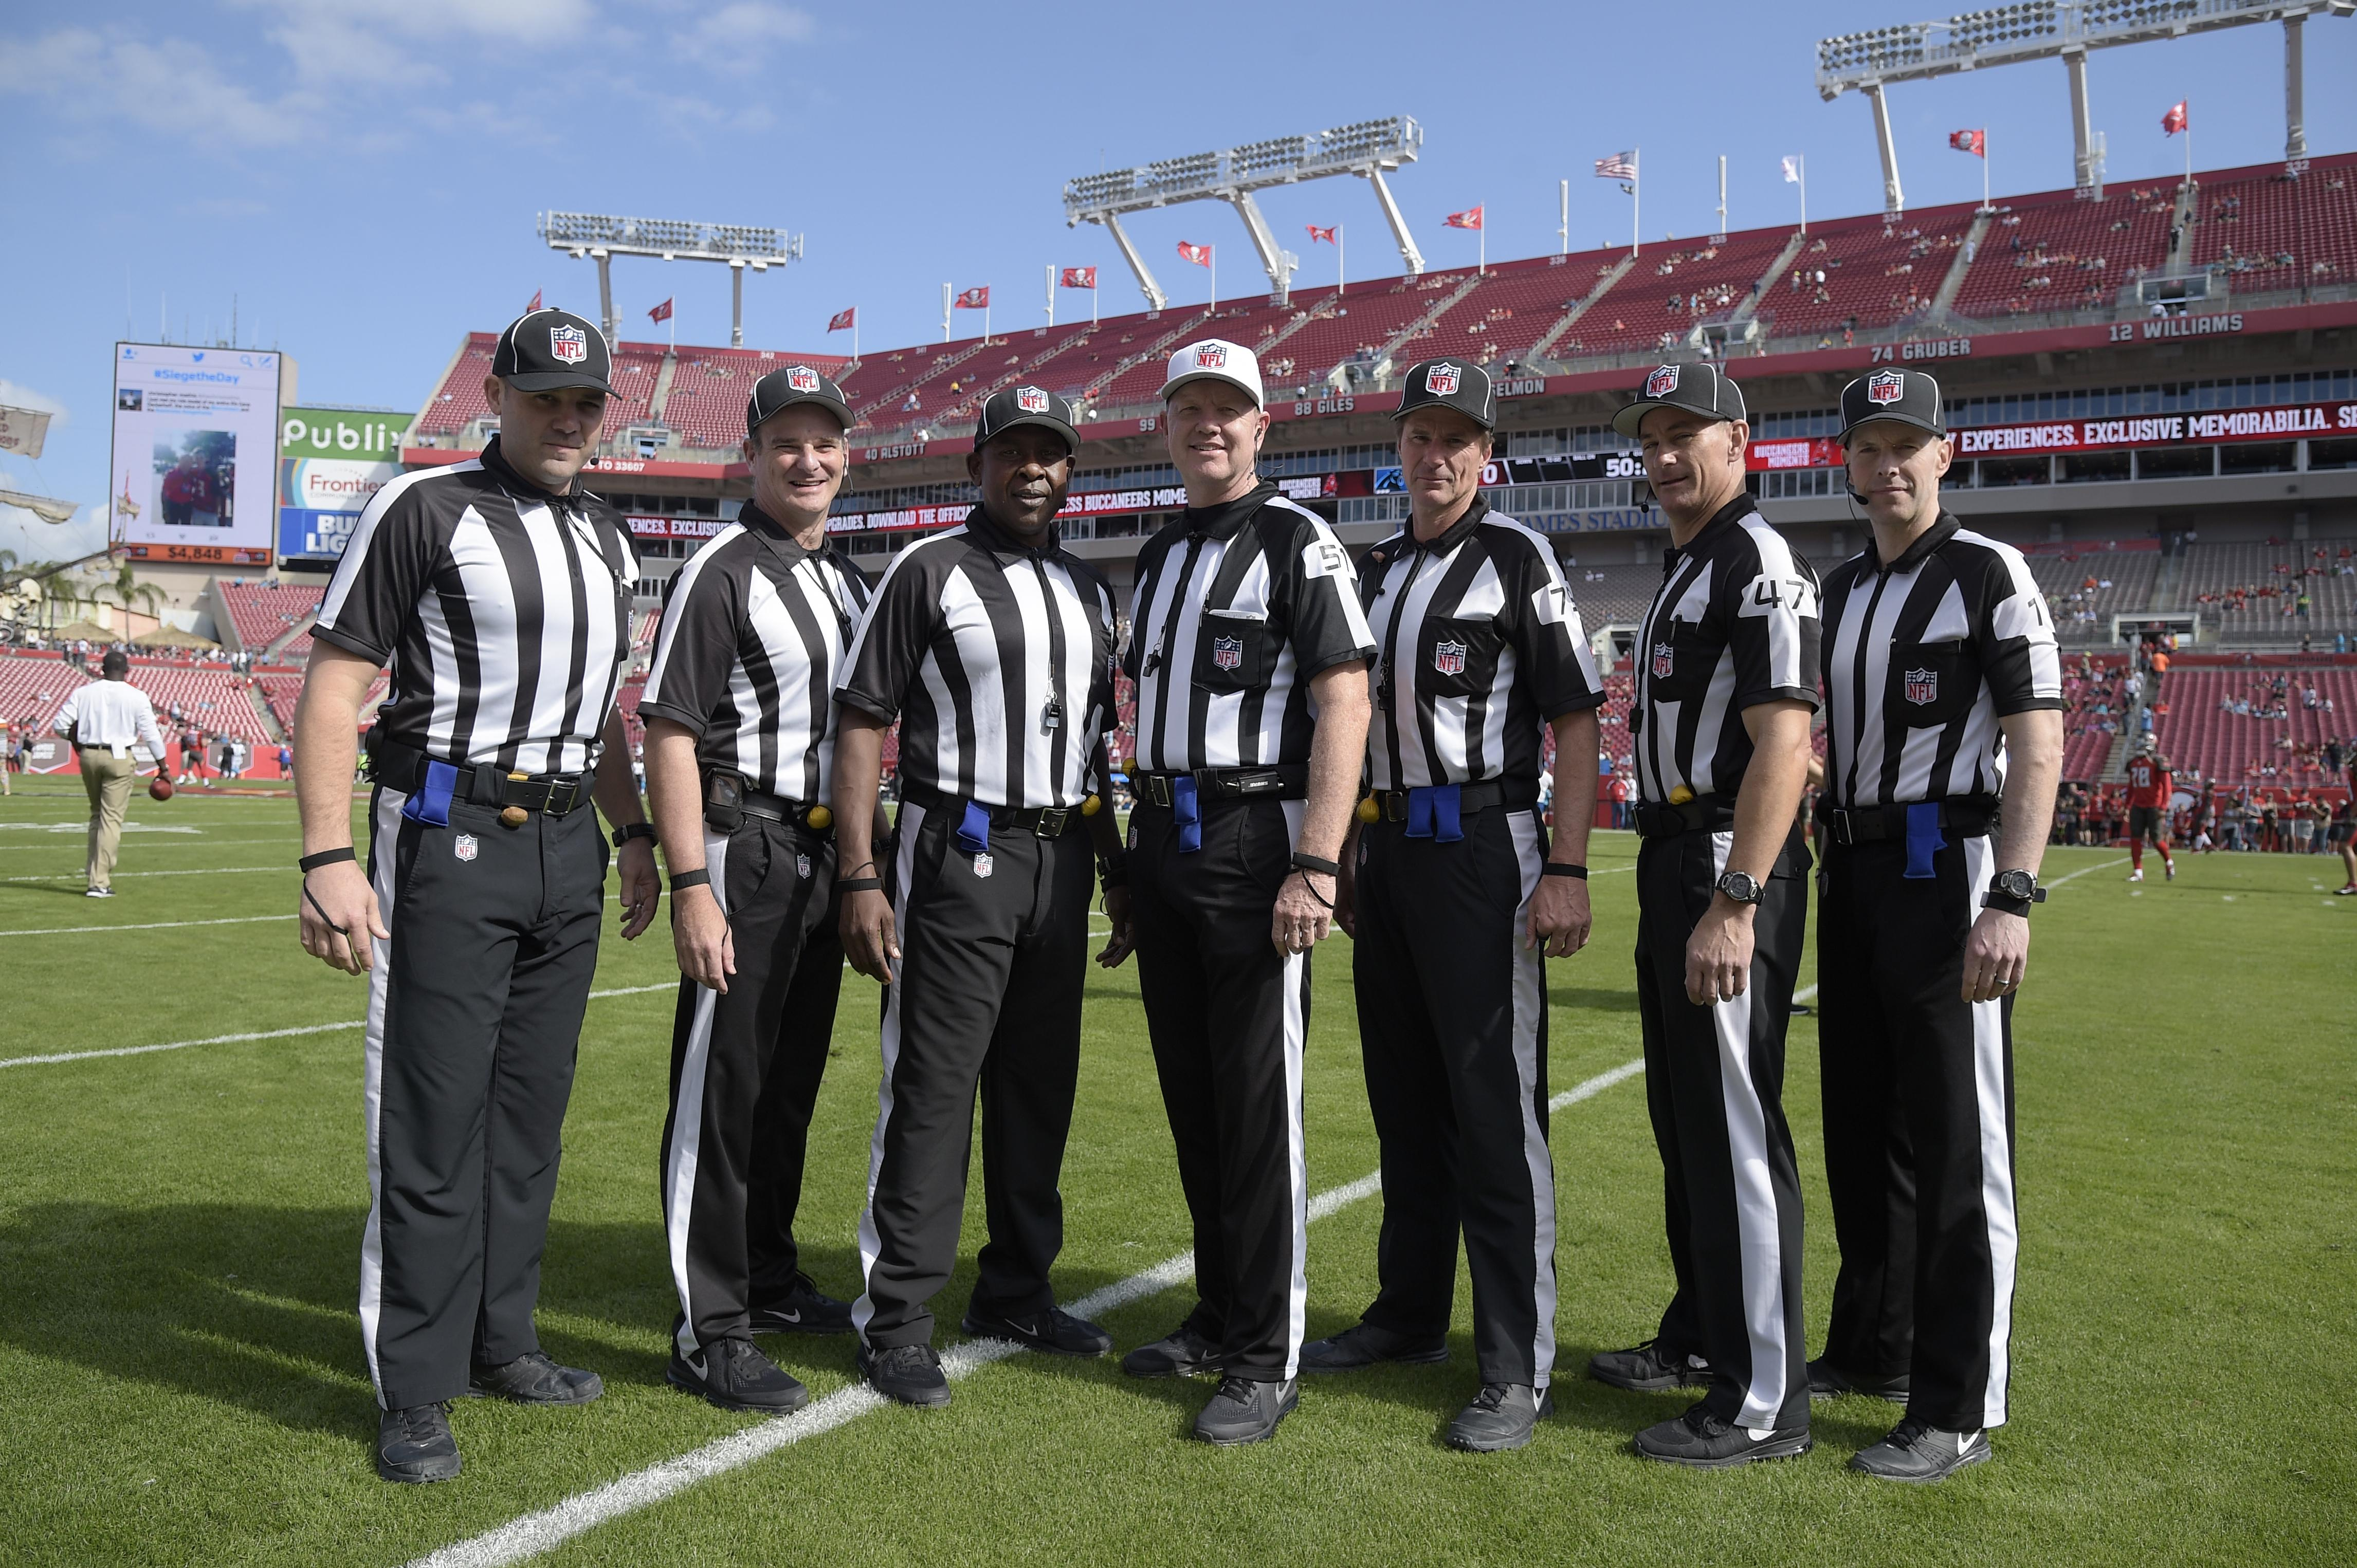 Nfl Referees Group Adds 4 Members To Start Work In 2017 The